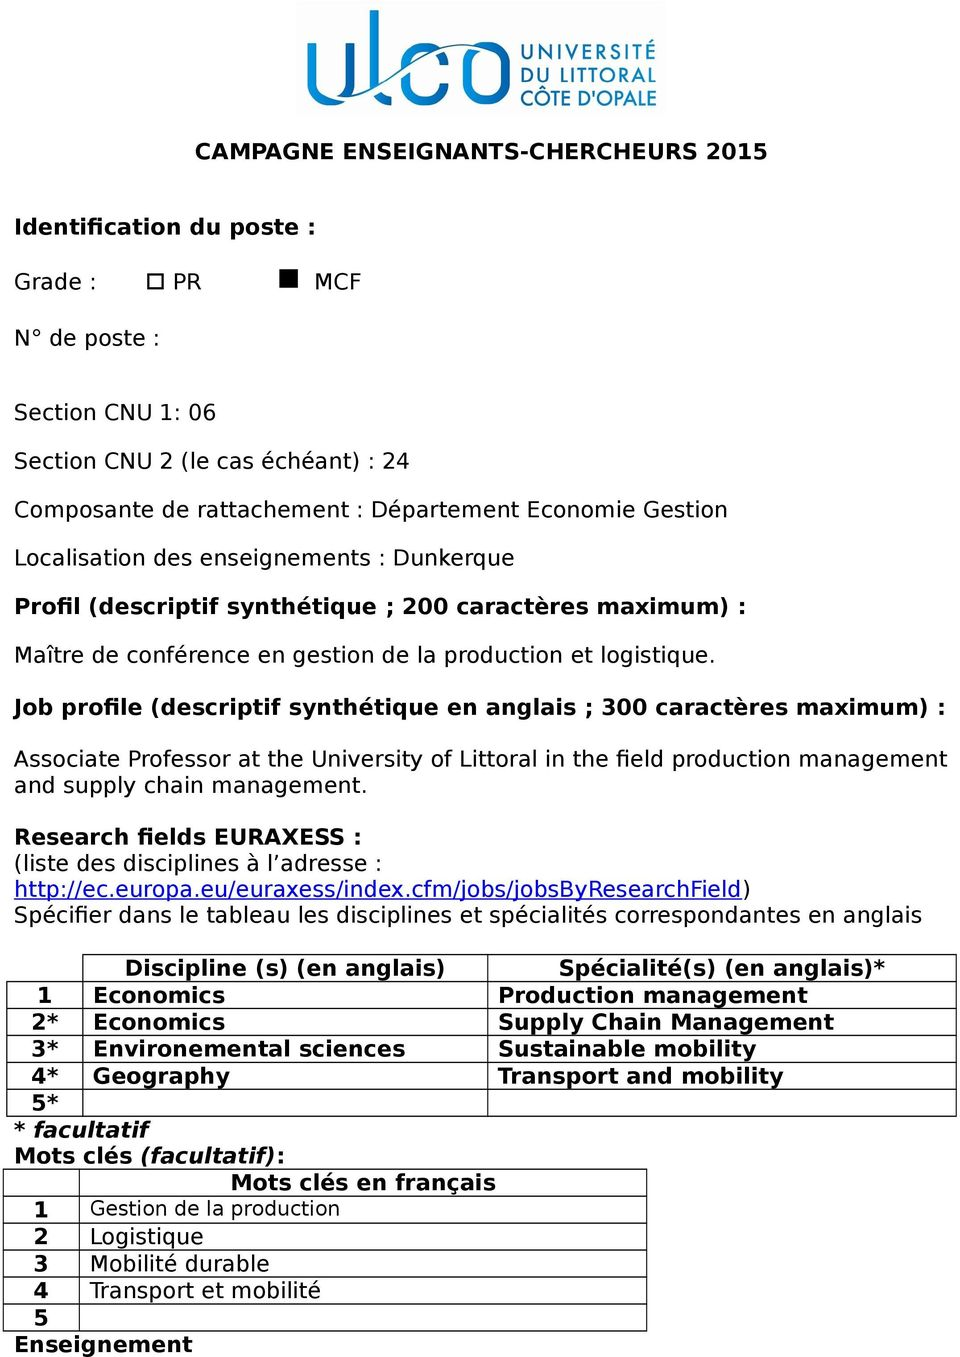 Job profile (descriptif synthétique en anglais ; 300 caractères maximum) : Associate Professor at the University of Littoral in the field production management and supply chain management.